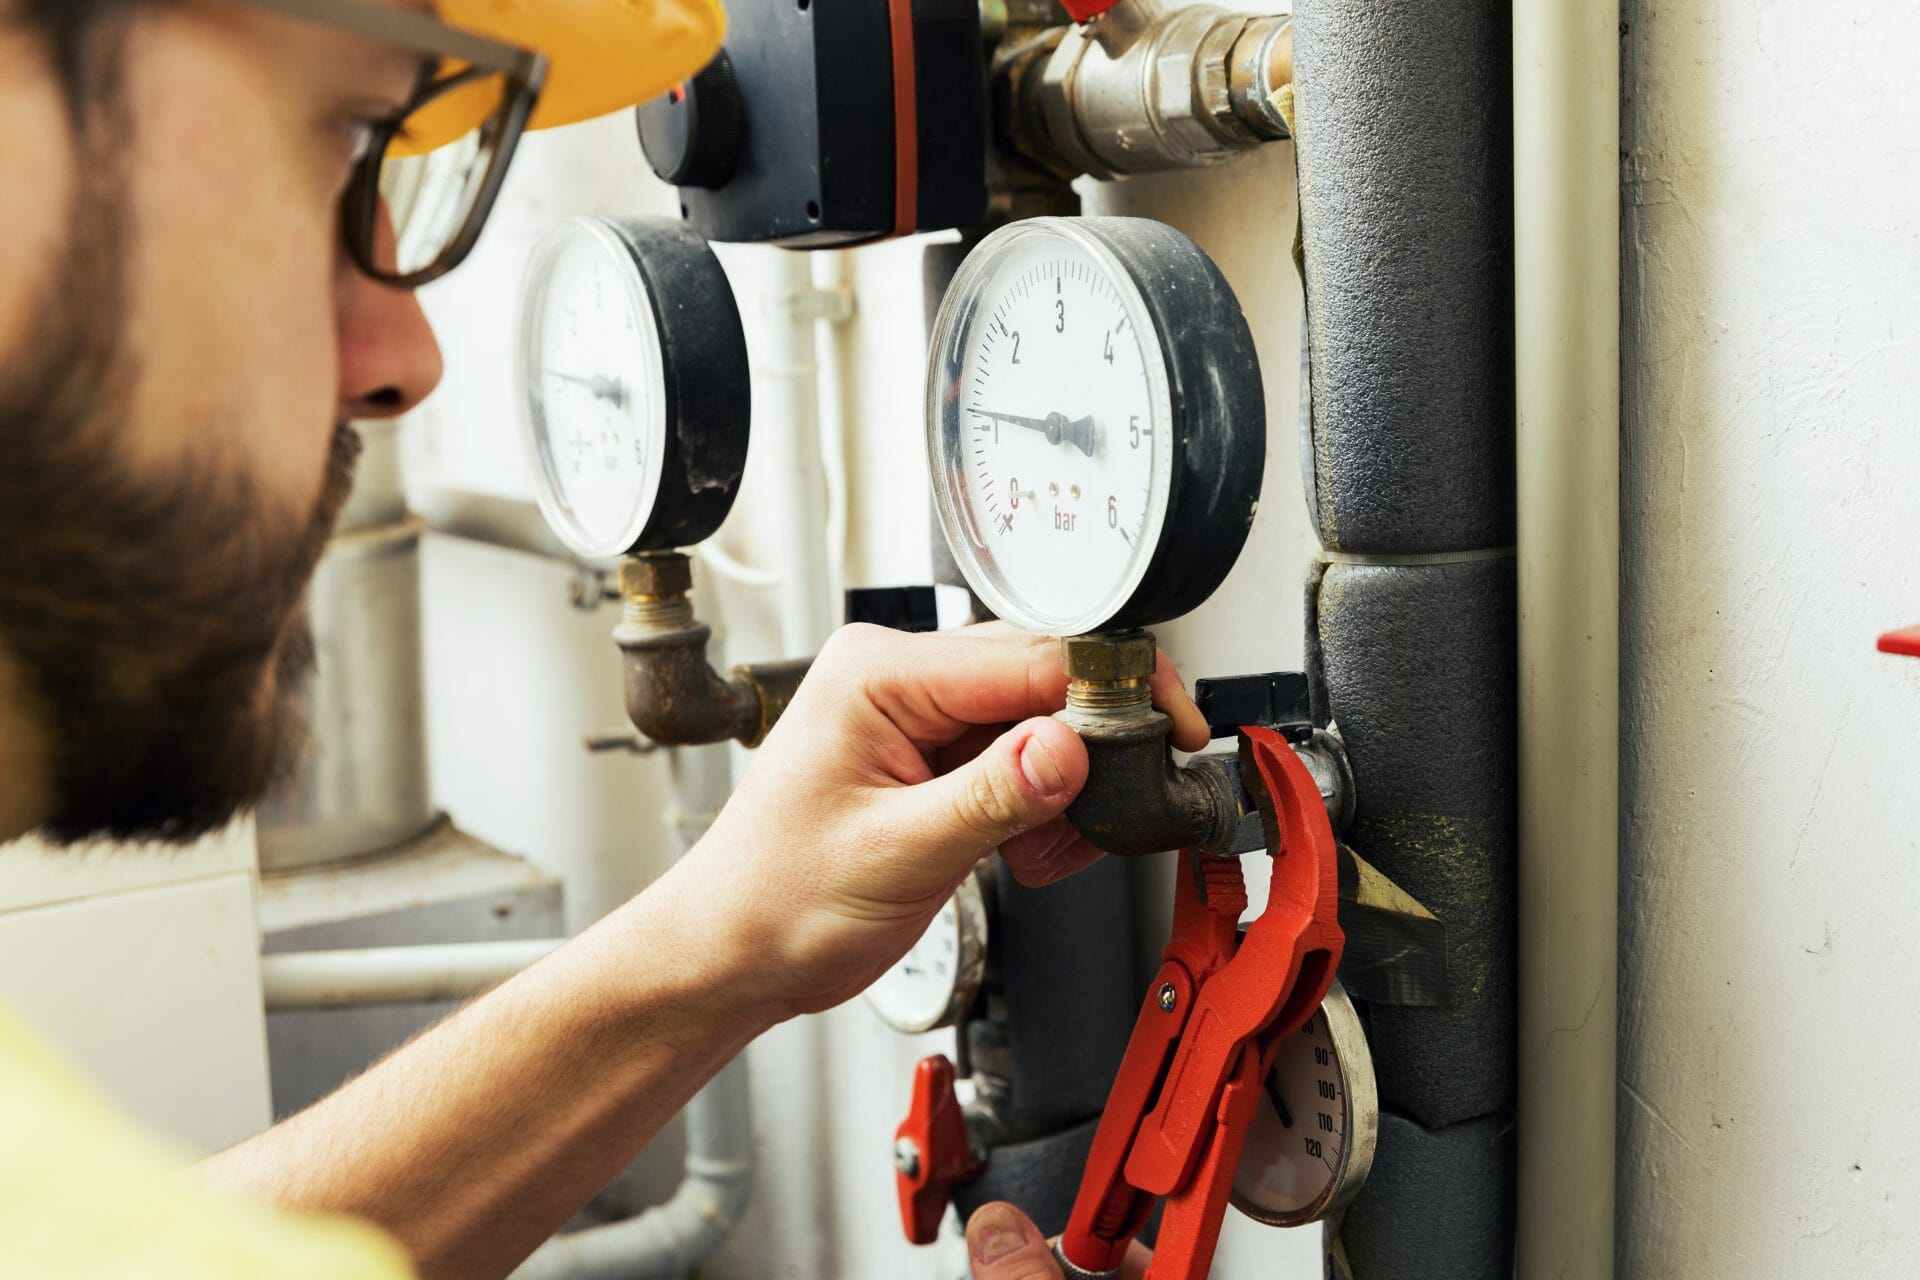 Considerations When Choosing Plumbing & Heating Contractor. Consistent Lower Back Pain Buying Banner Ads. Colleges And Universities In St Louis. Alcohol Treatment Centers In Pa. Degree In Food Science And Nutrition. Renters Insurance Orlando Stair Lifts Rentals. Pmp Certification New York Kalamazoo Art Hop. Hecm Counseling Agencies Cord Blood Solutions. Car Accident Injury Settlement Amounts